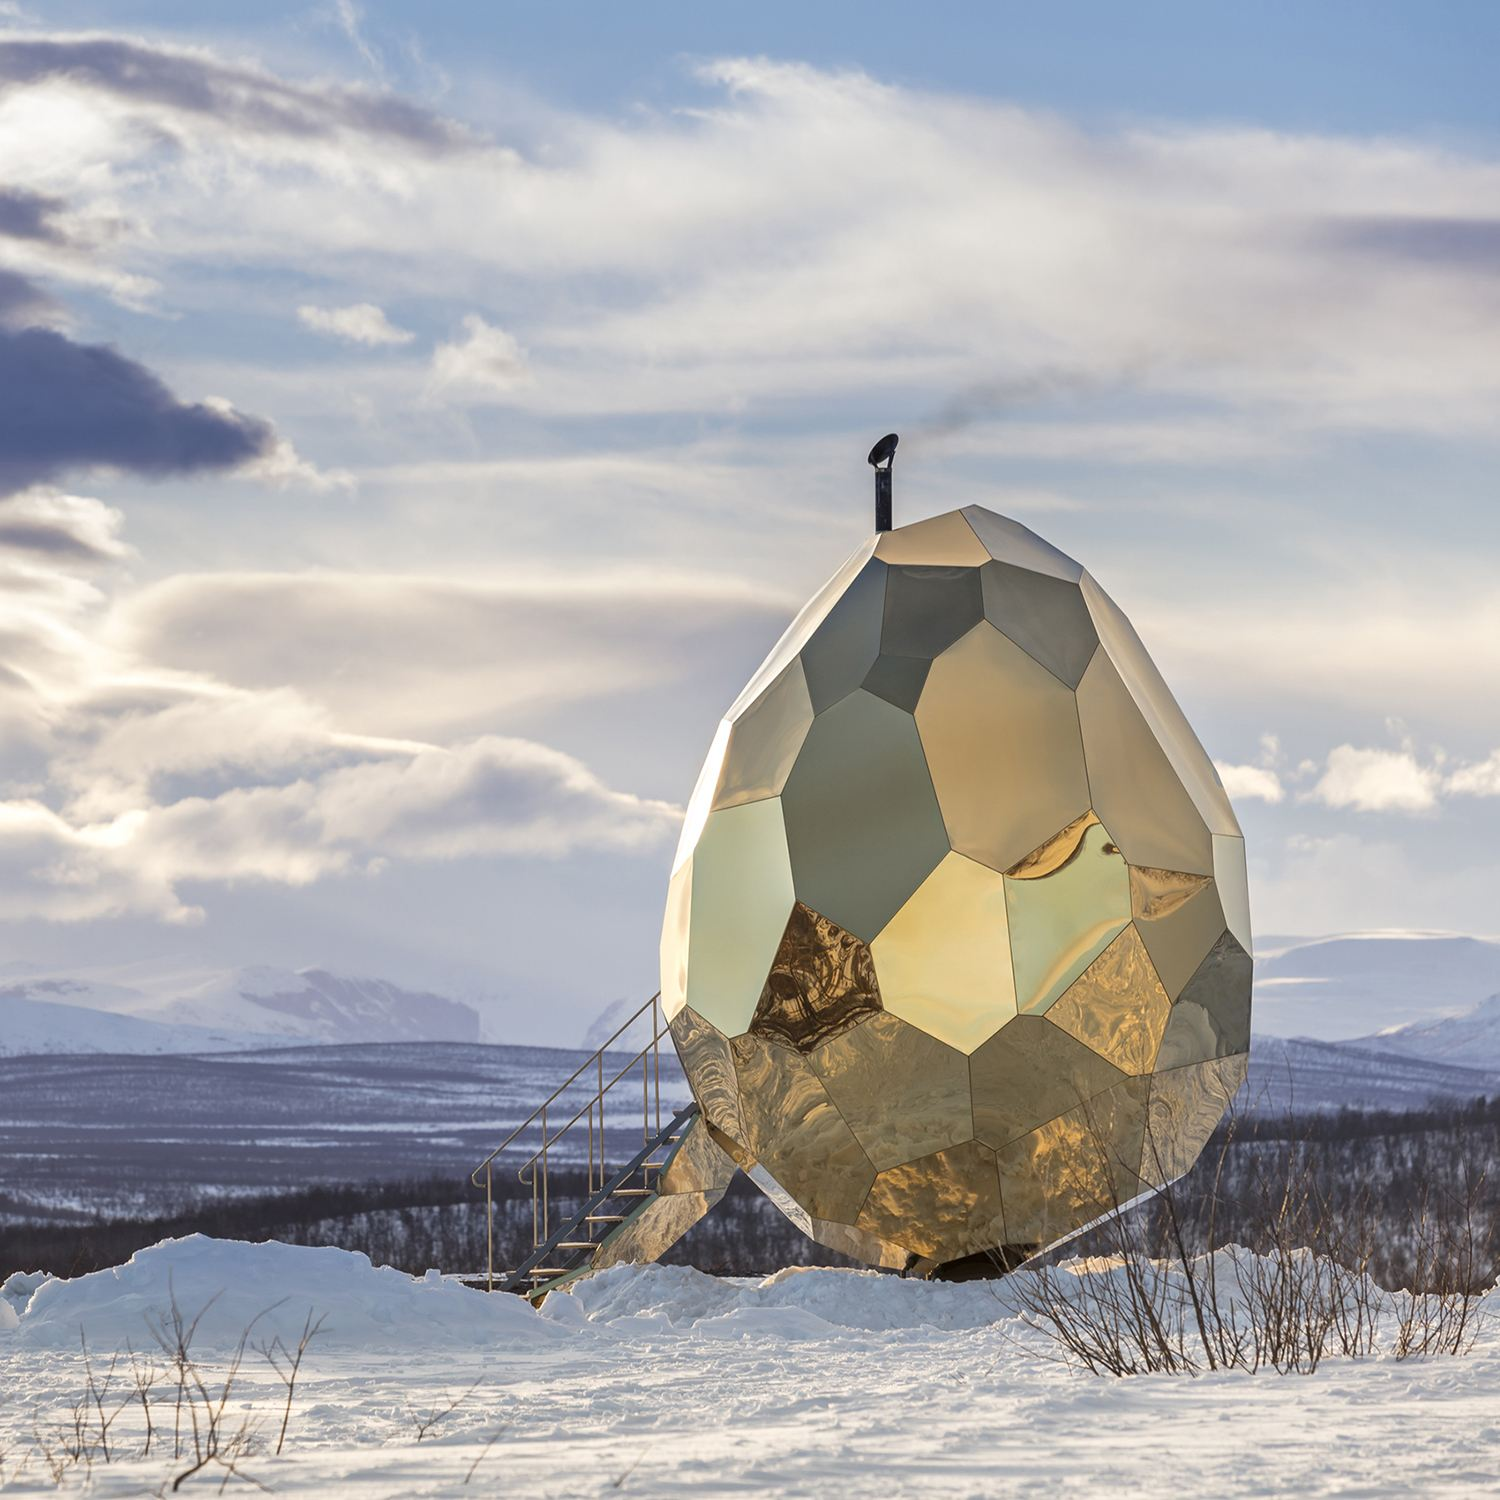 solar egg by by Futurniture and Bigert & Bergström